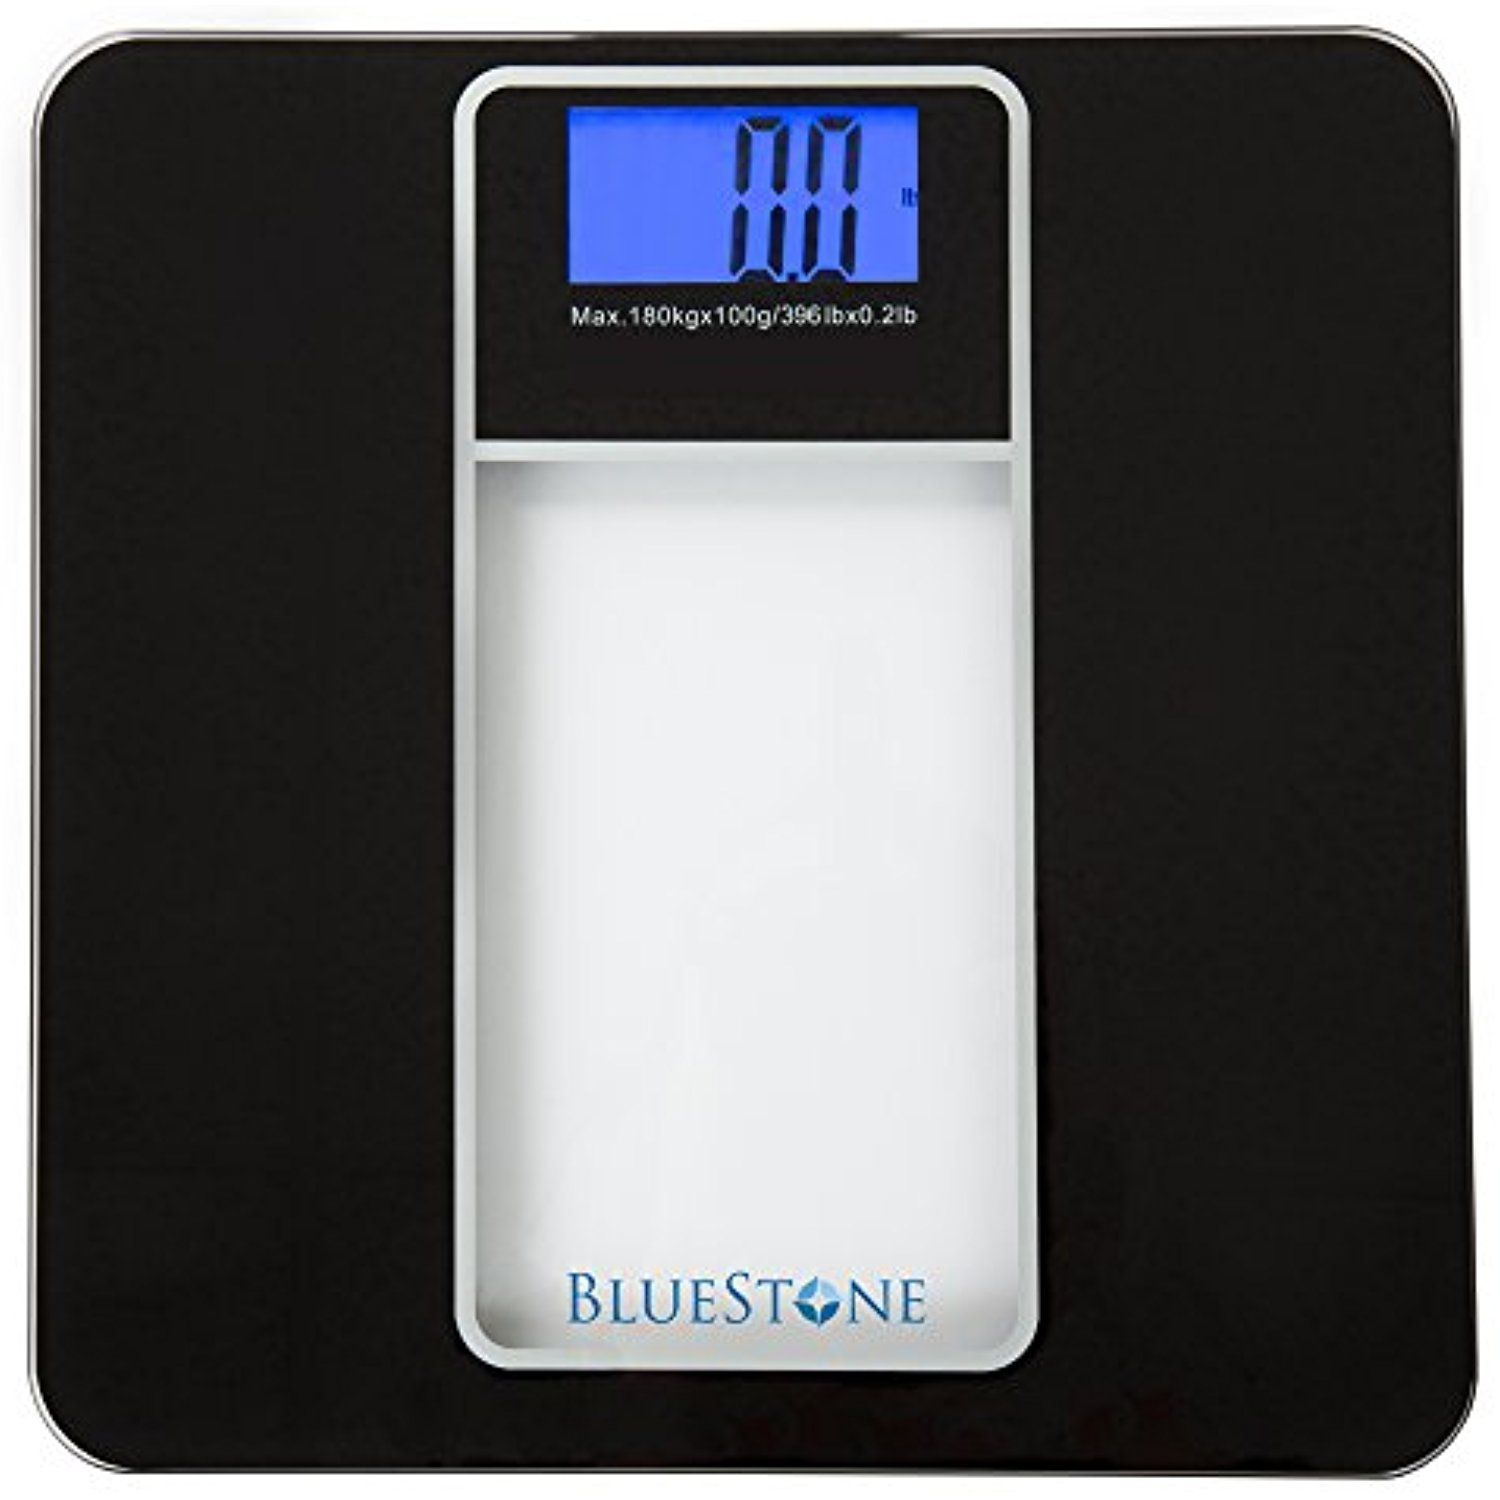 Digital Body Weight Bathroom Scale Battery Operated Cordless Large Lcd Display For Health And Fitness